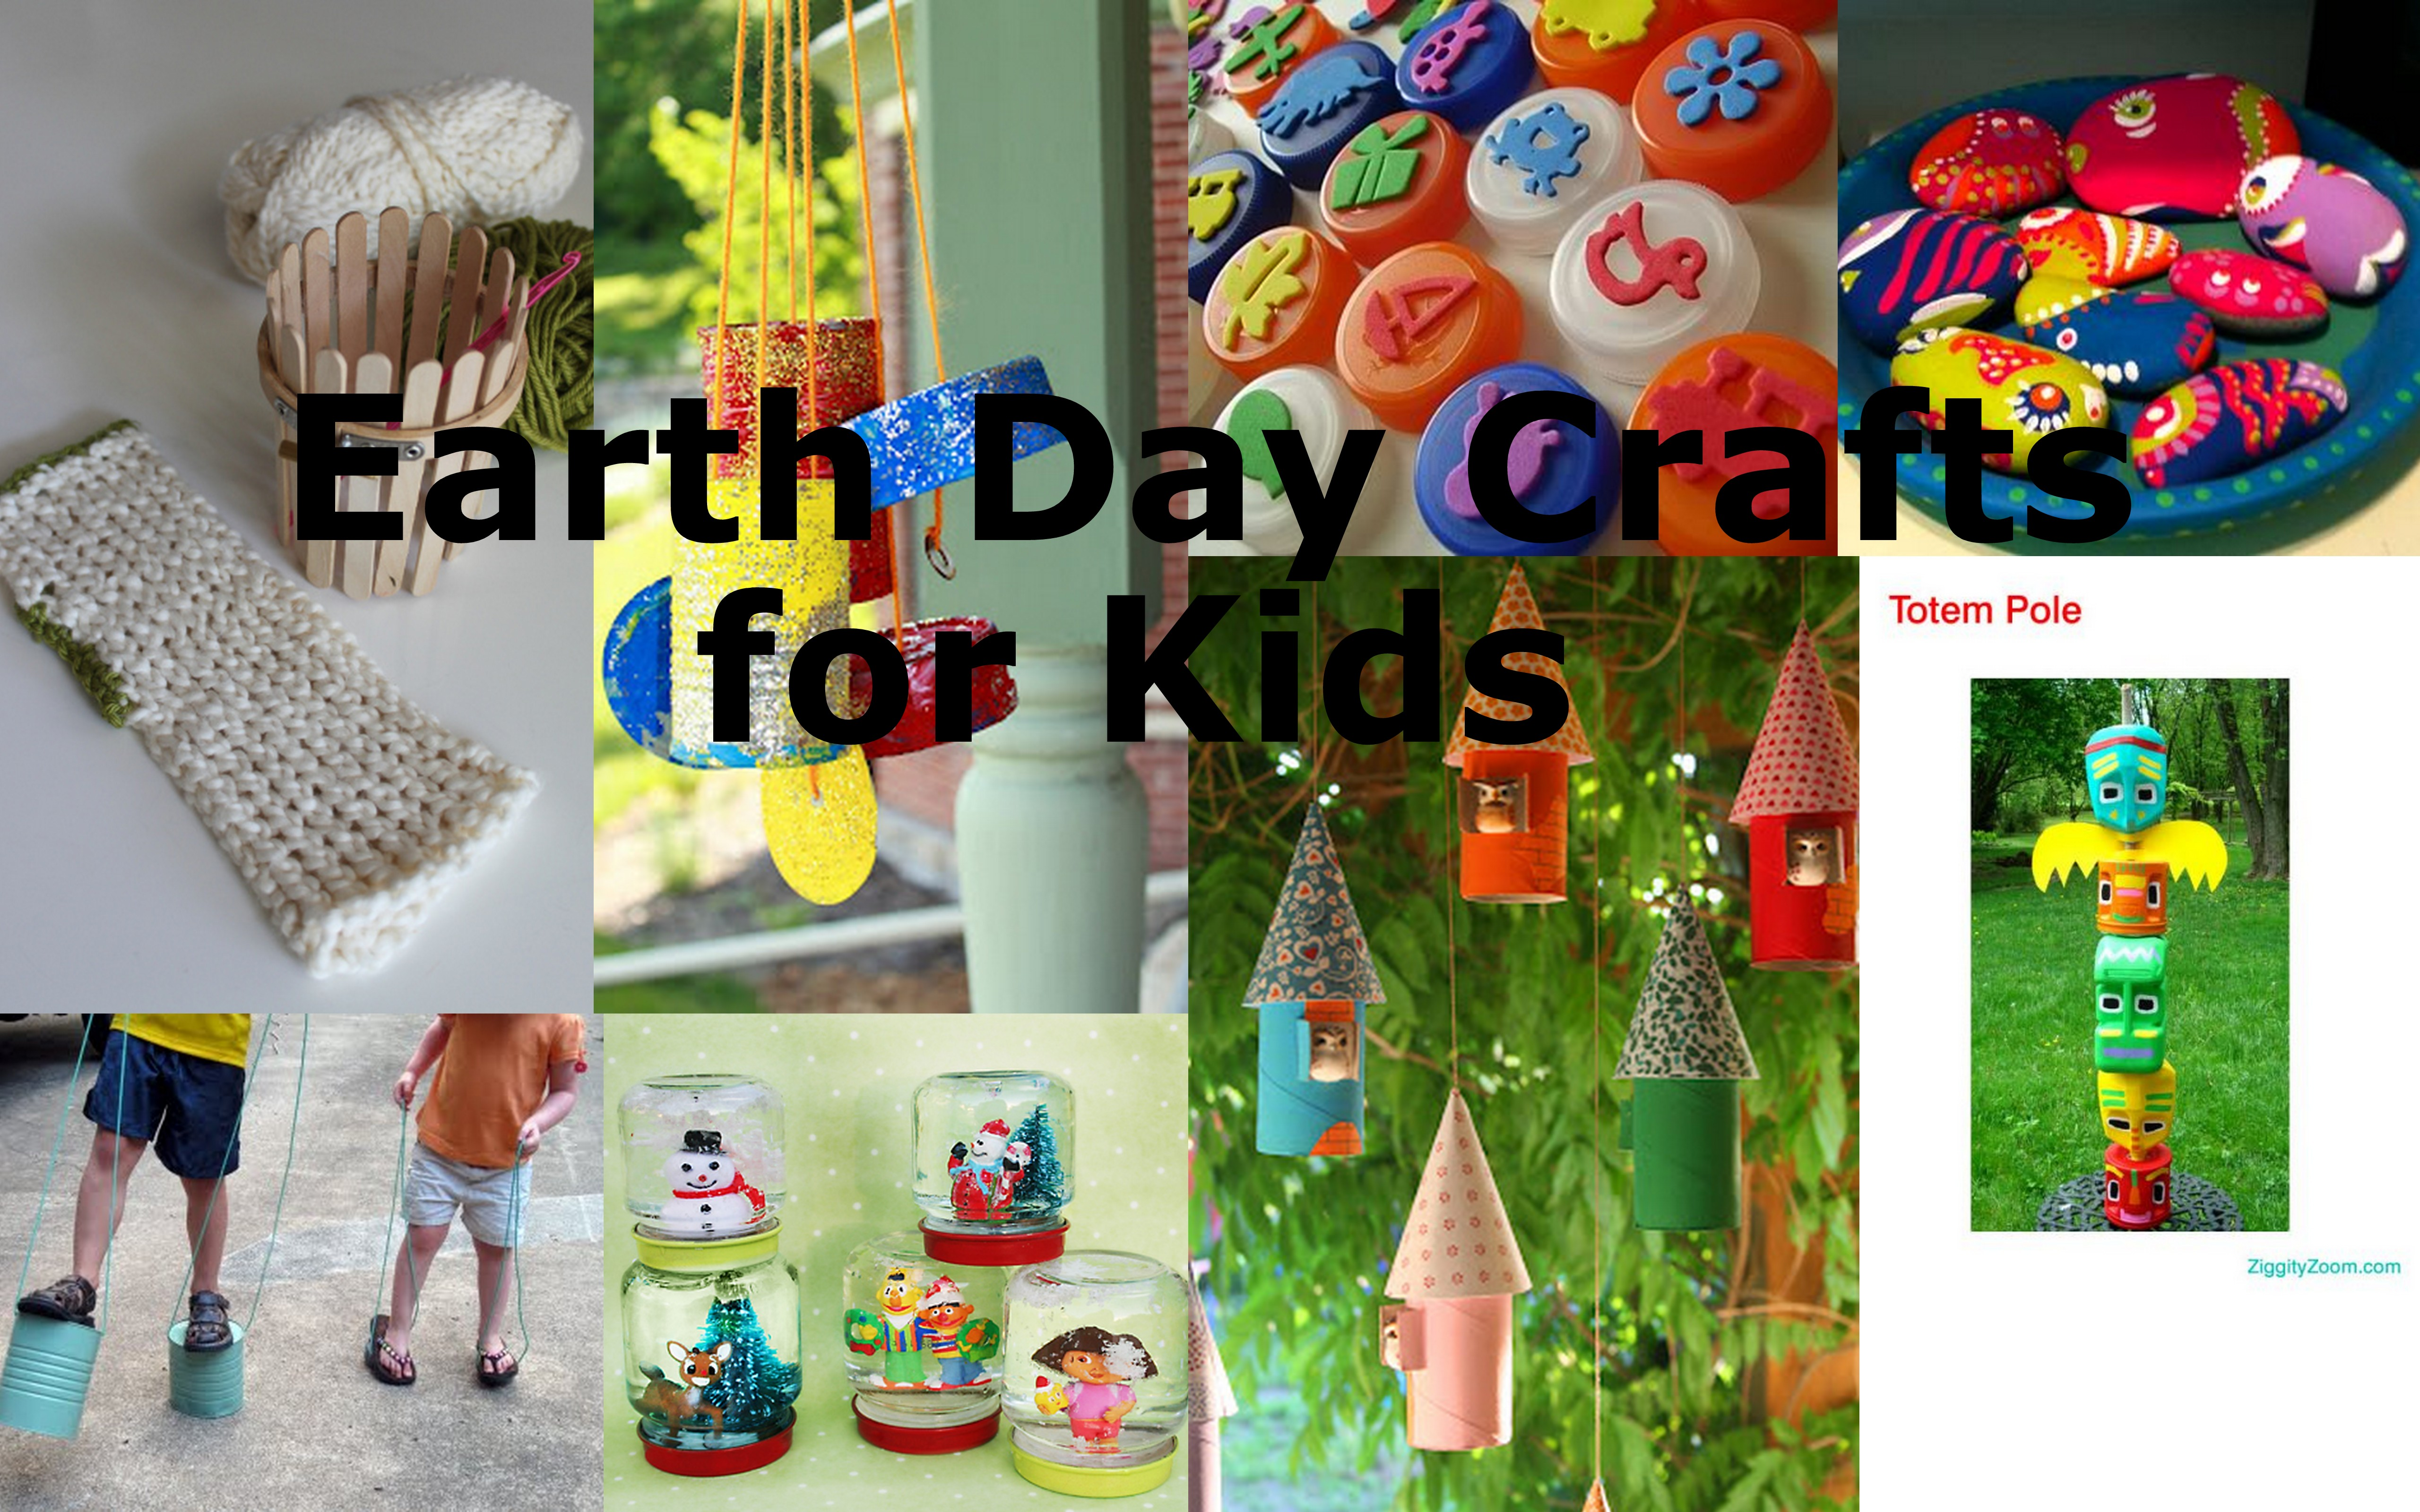 8 More Earth Day Crafts for Kids • Vicki O'Dell